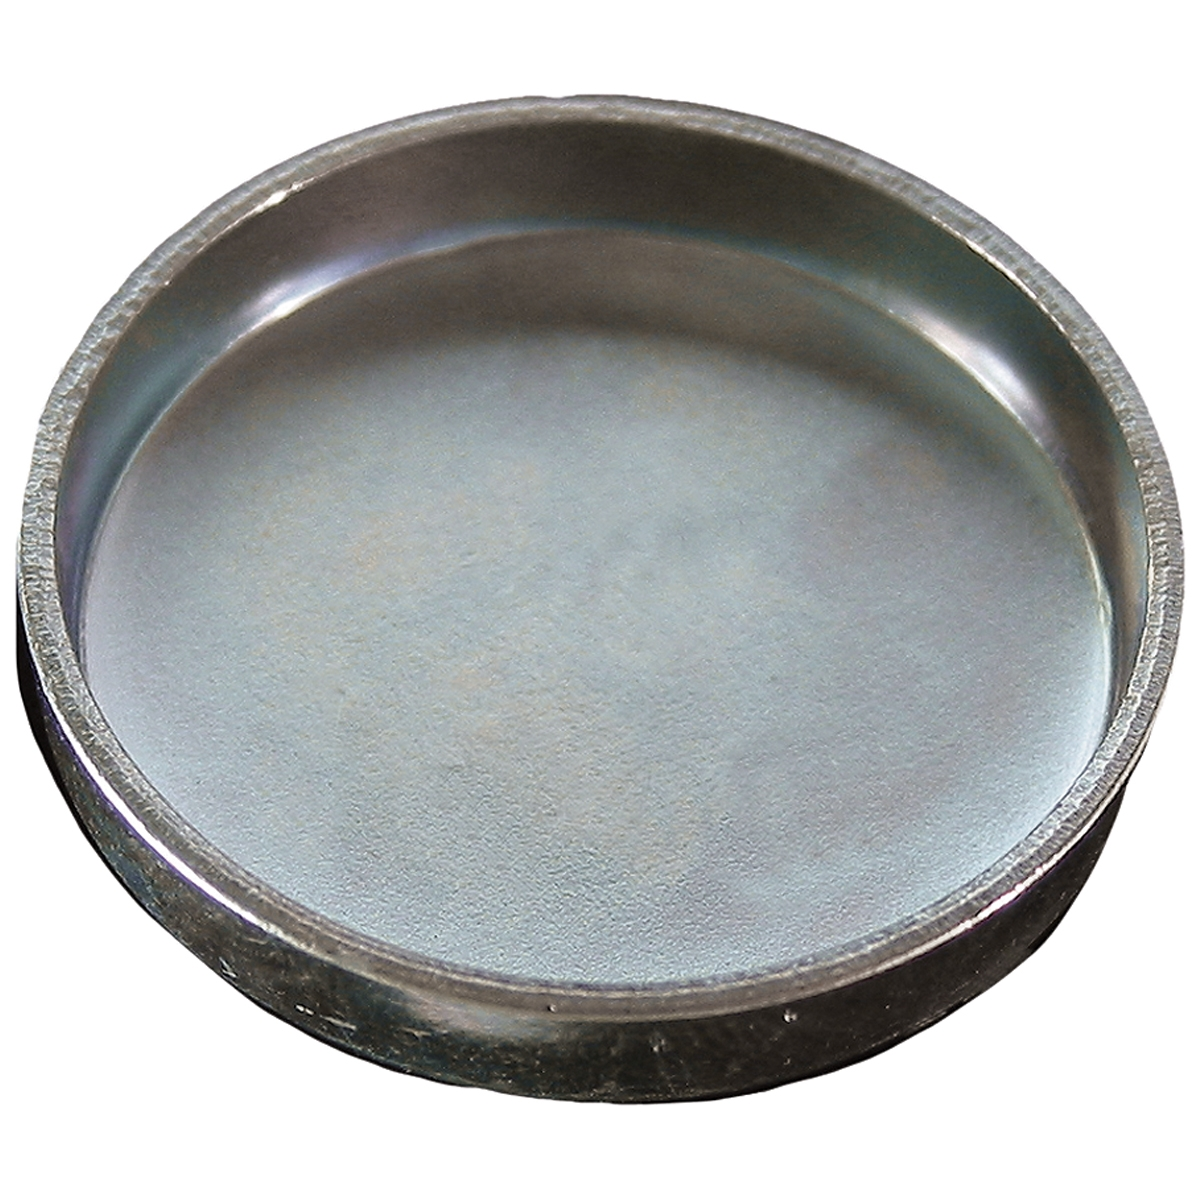 Shallow Cup Type